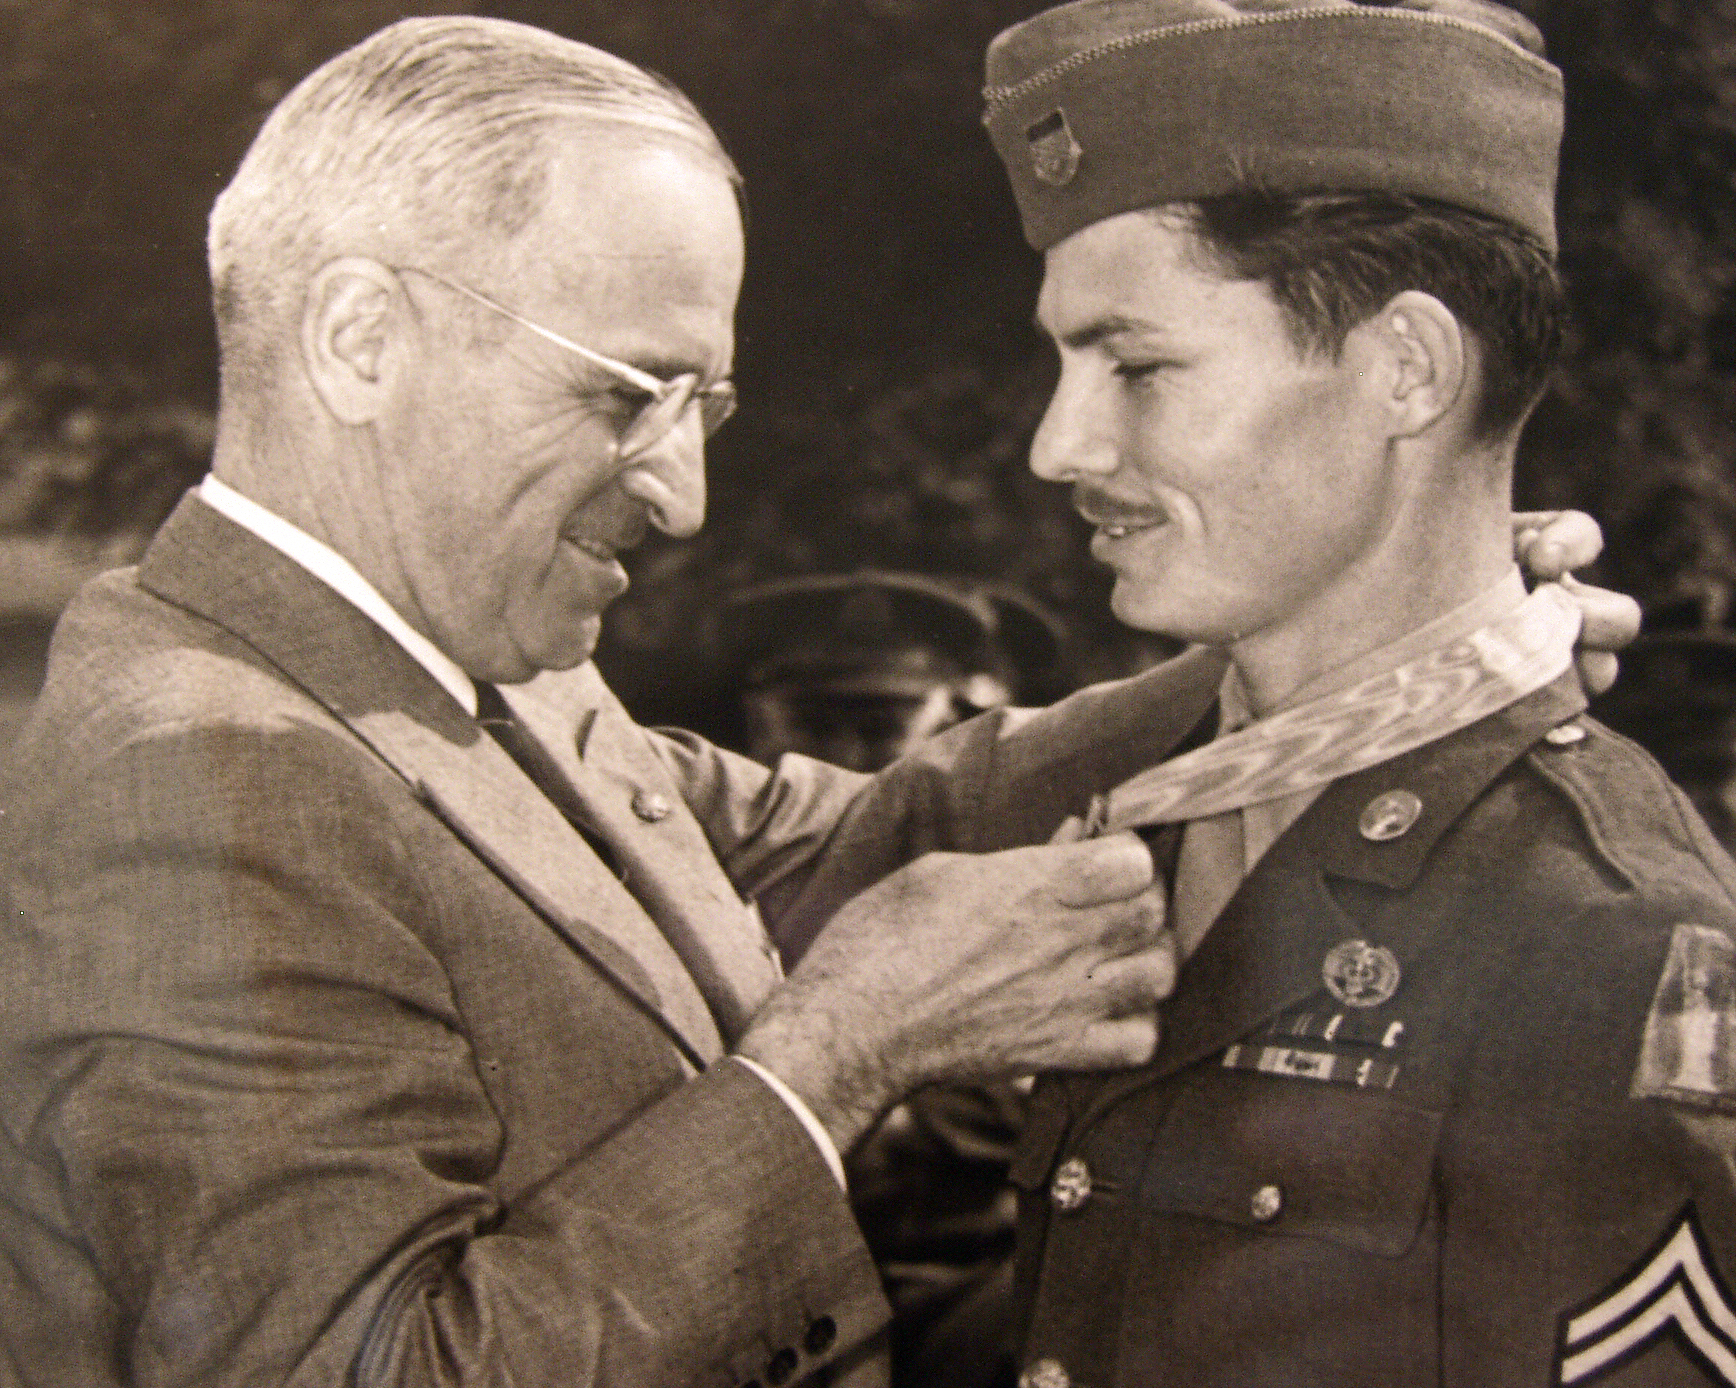 President Harry Truman awards Cpl. Desmond Doss the Medal of Honor. Photo courtesy of the Desmond Doss Council